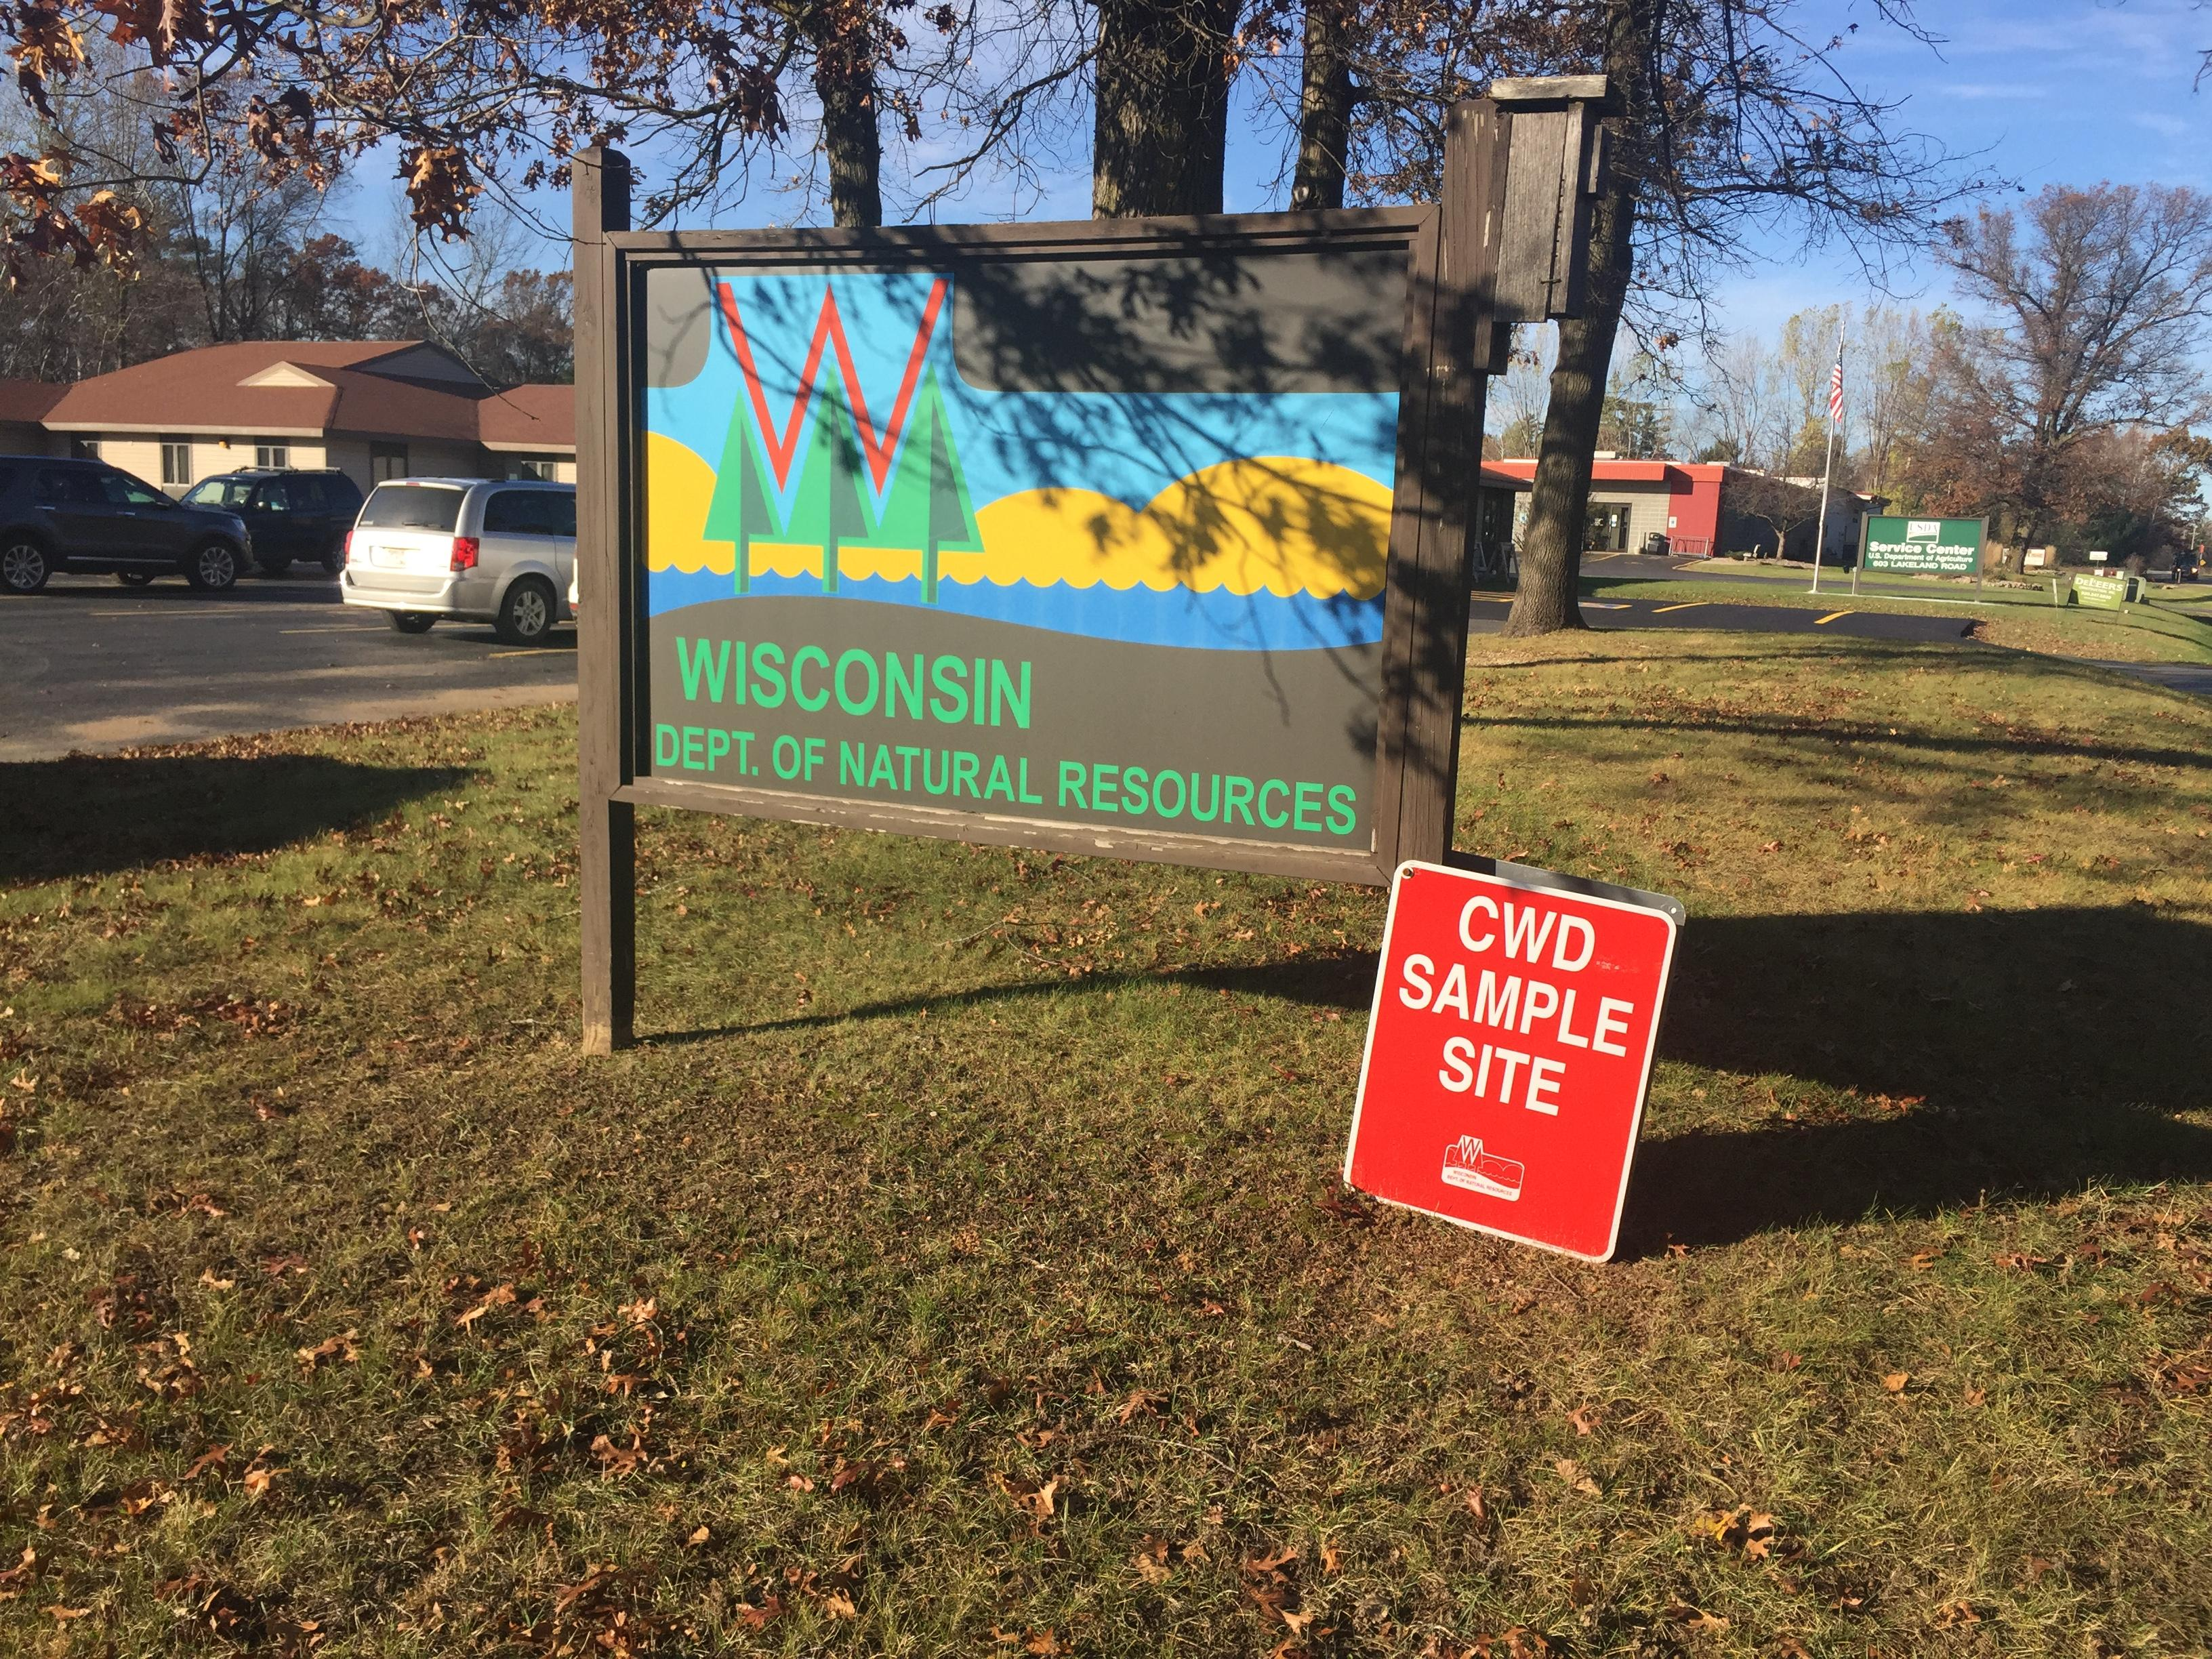 CWD drop off site at Shawano DNR office, November 6, 2017 (WLUK/Eric Peterson)